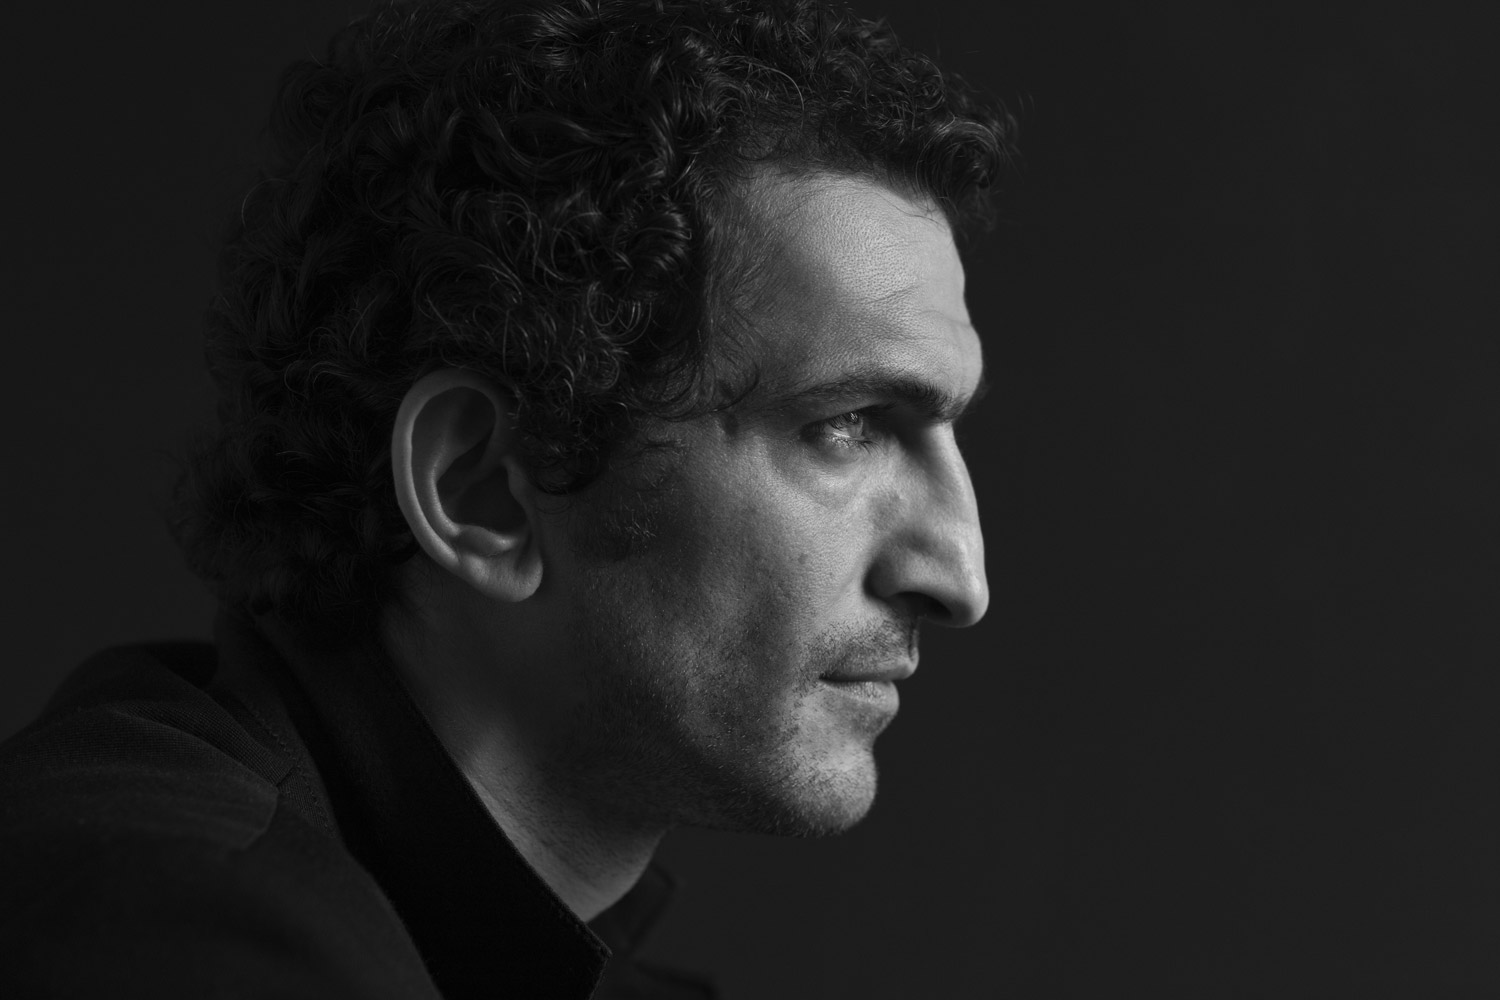 Amr Waked, actor